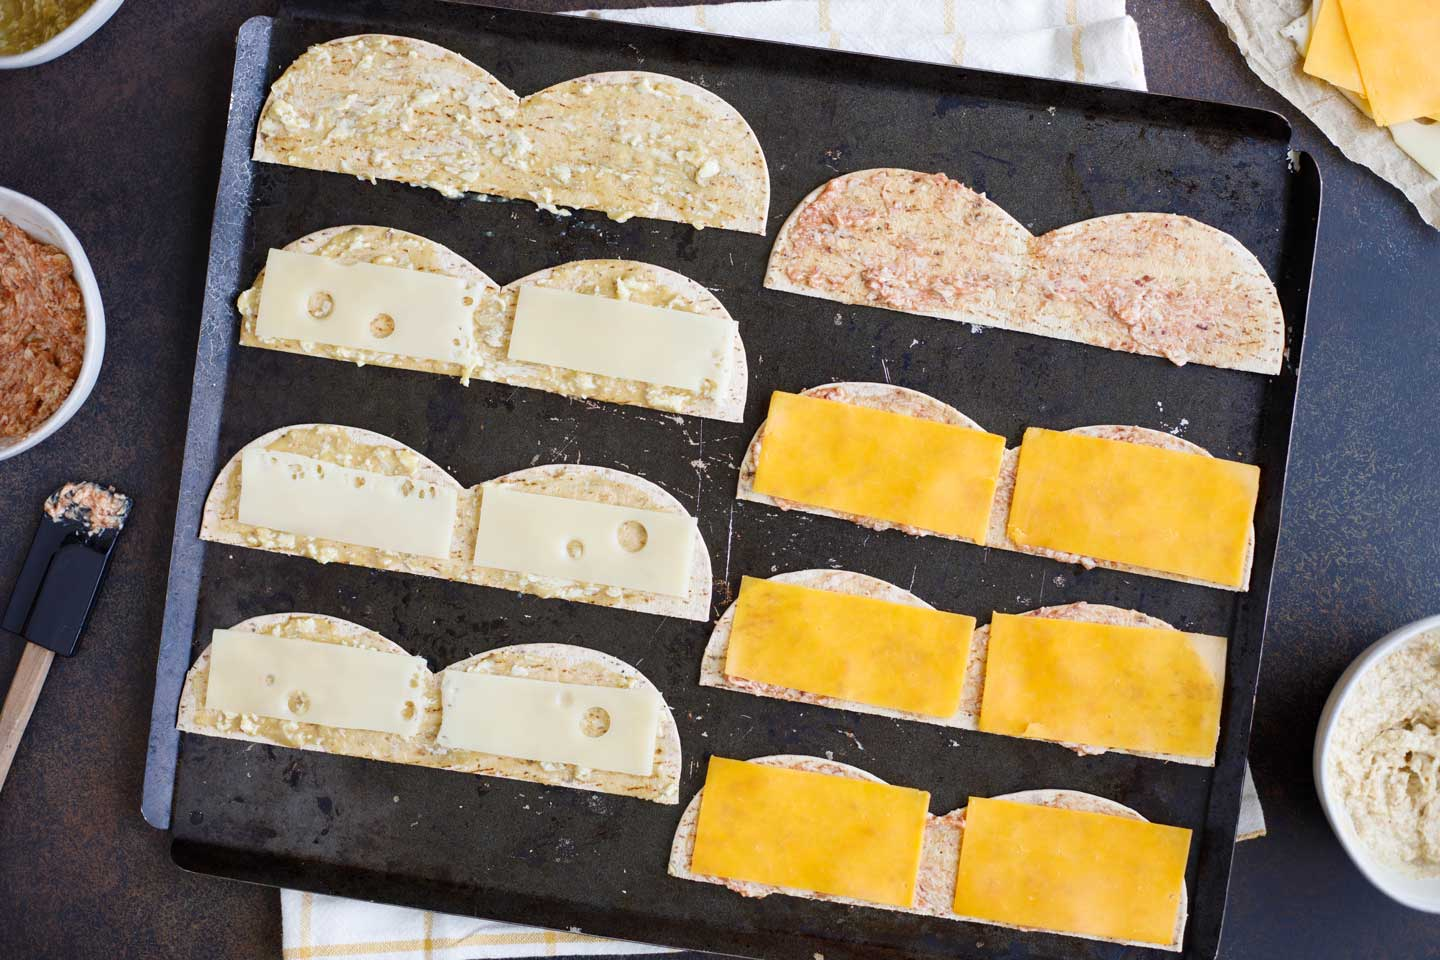 Halved flatbreads laid out and topped with sandwich spreads and cheeses, surrounded by more cheese and spreads